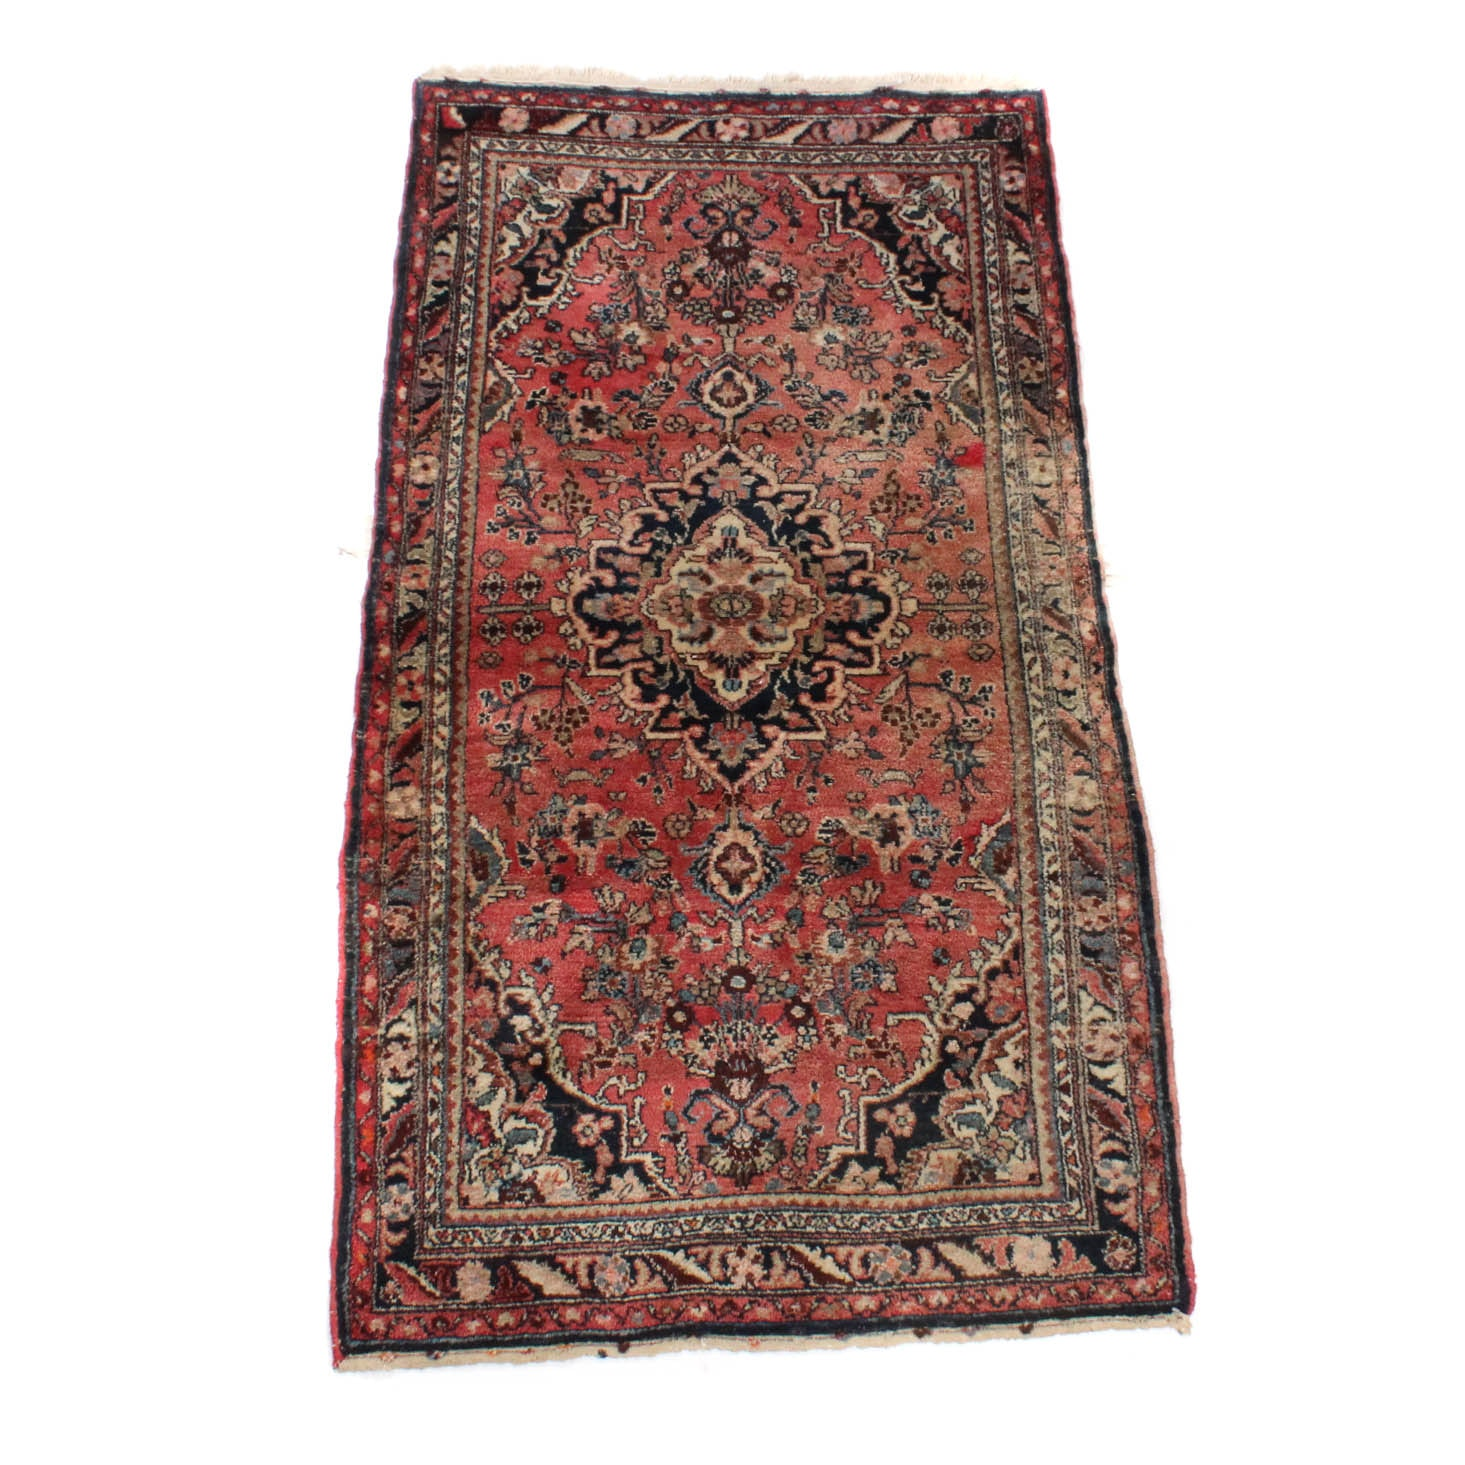 Semi-Antique Hand-Knotted Persian Mahal Rug